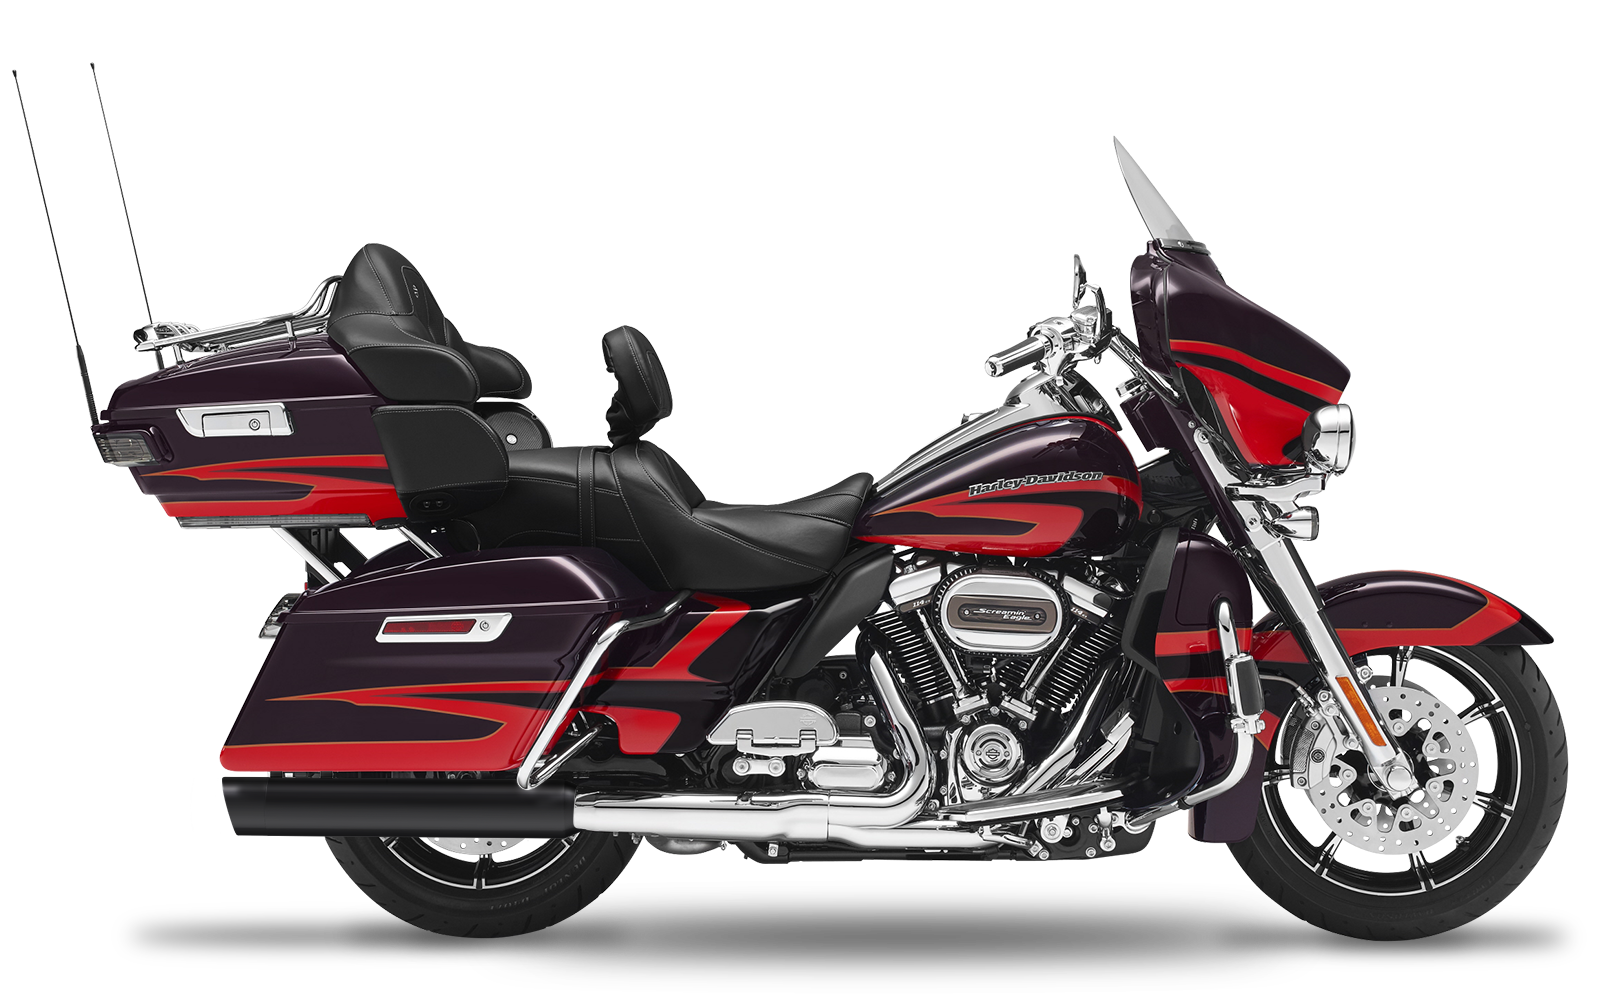 Touring - Electra Glide Ultra Limited - ME114 - 2021 - Slipons